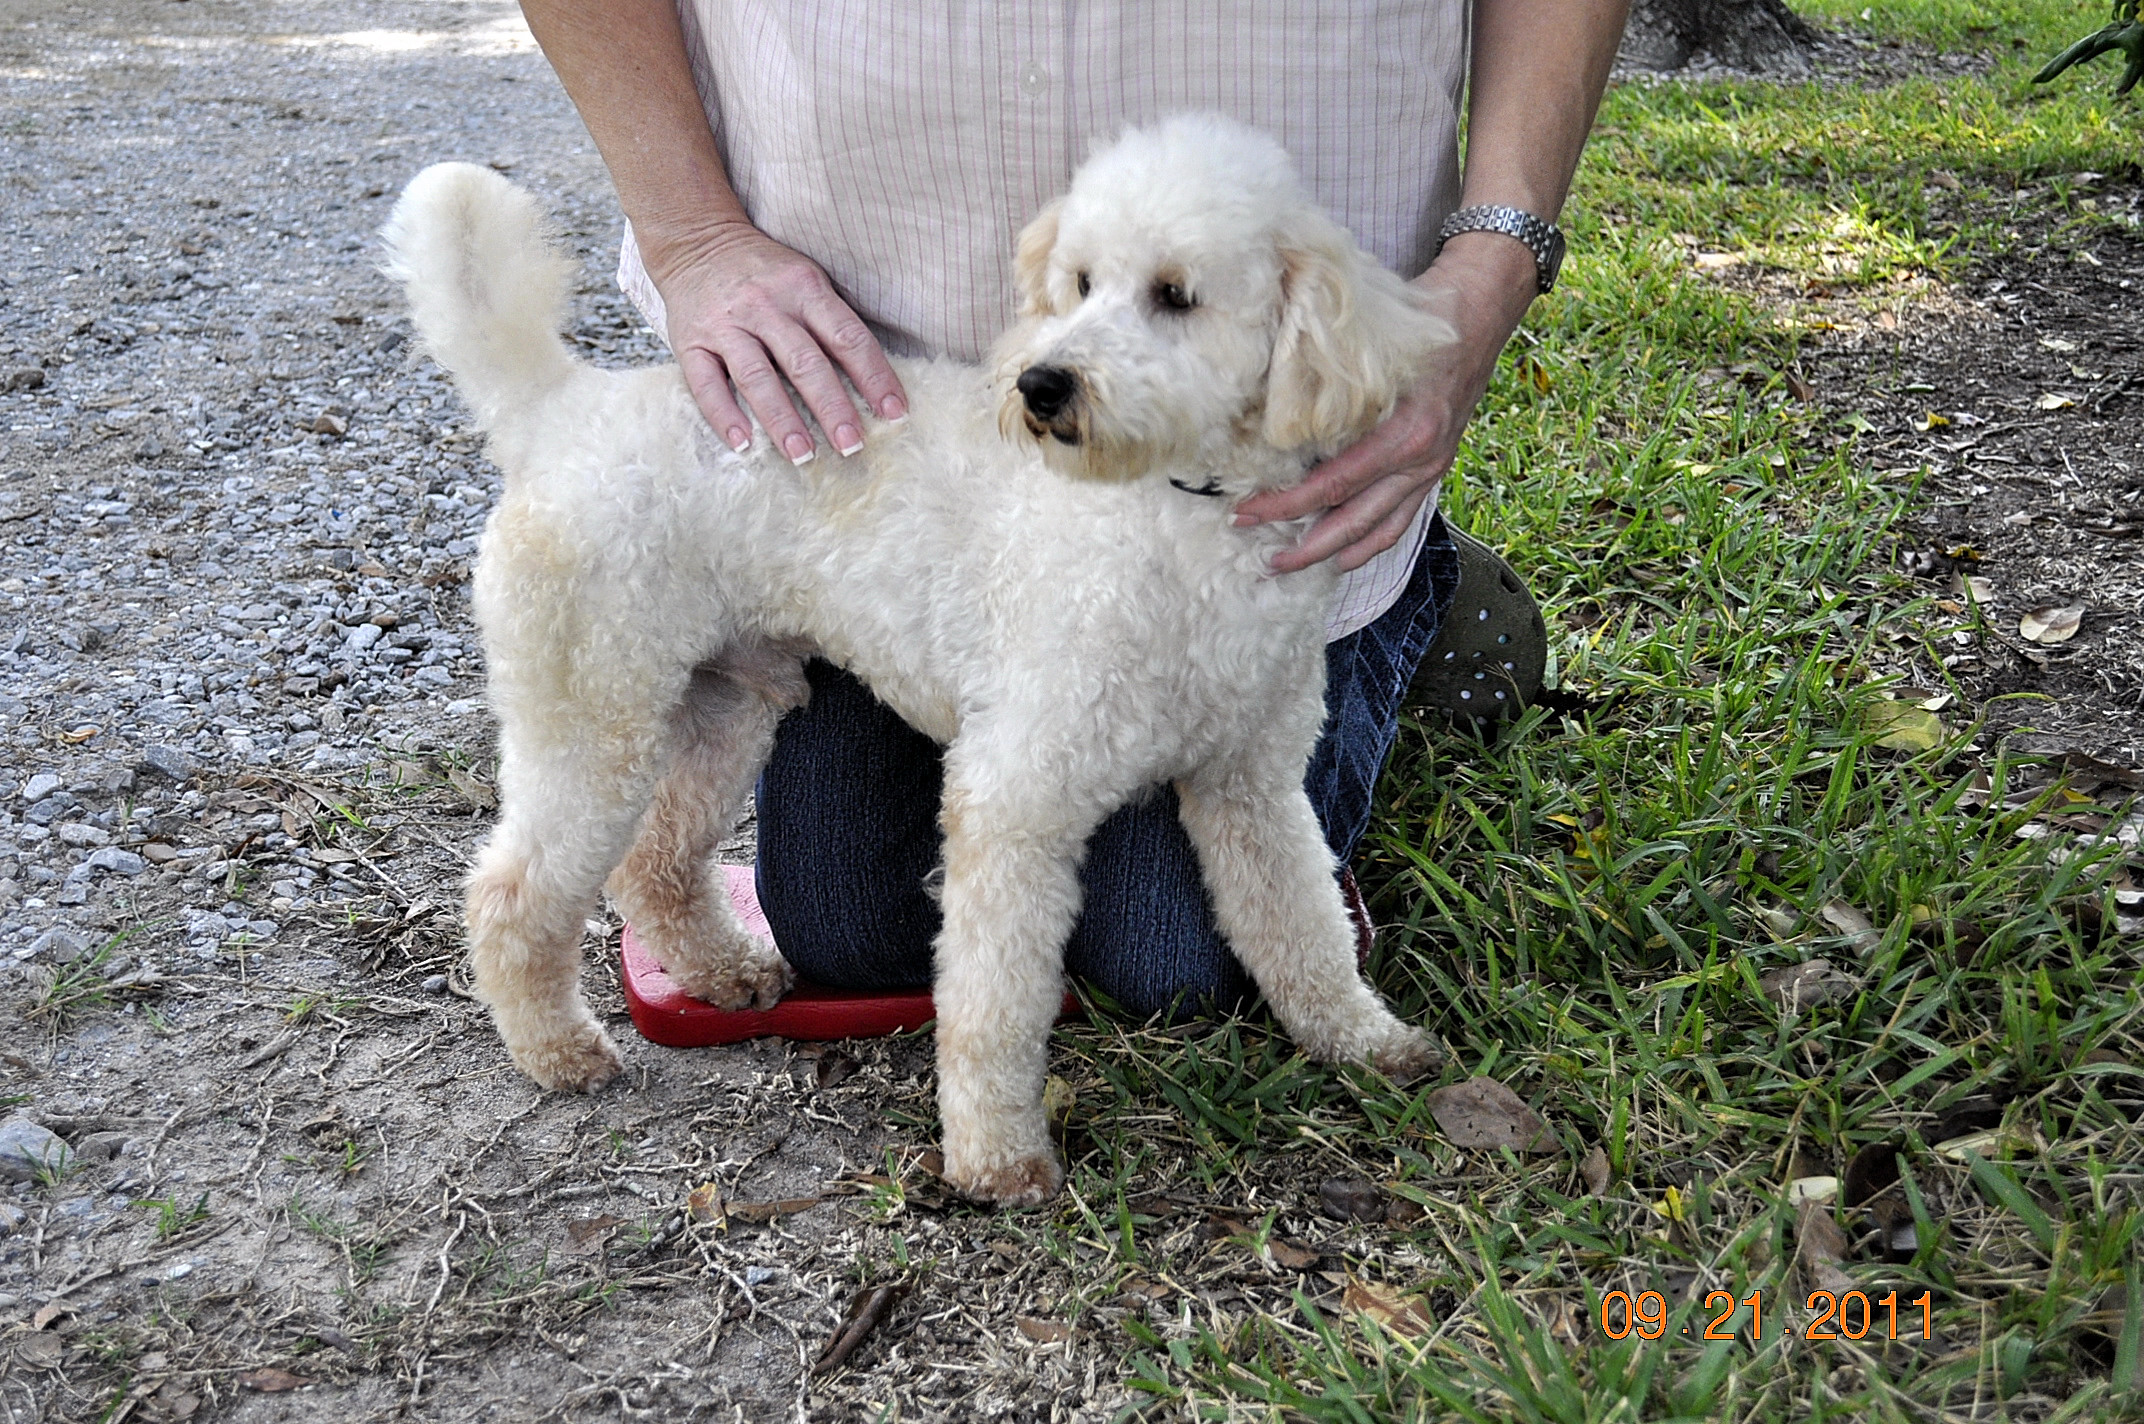 Full Grown Poodle | www.imgkid.com - The Image Kid Has It!